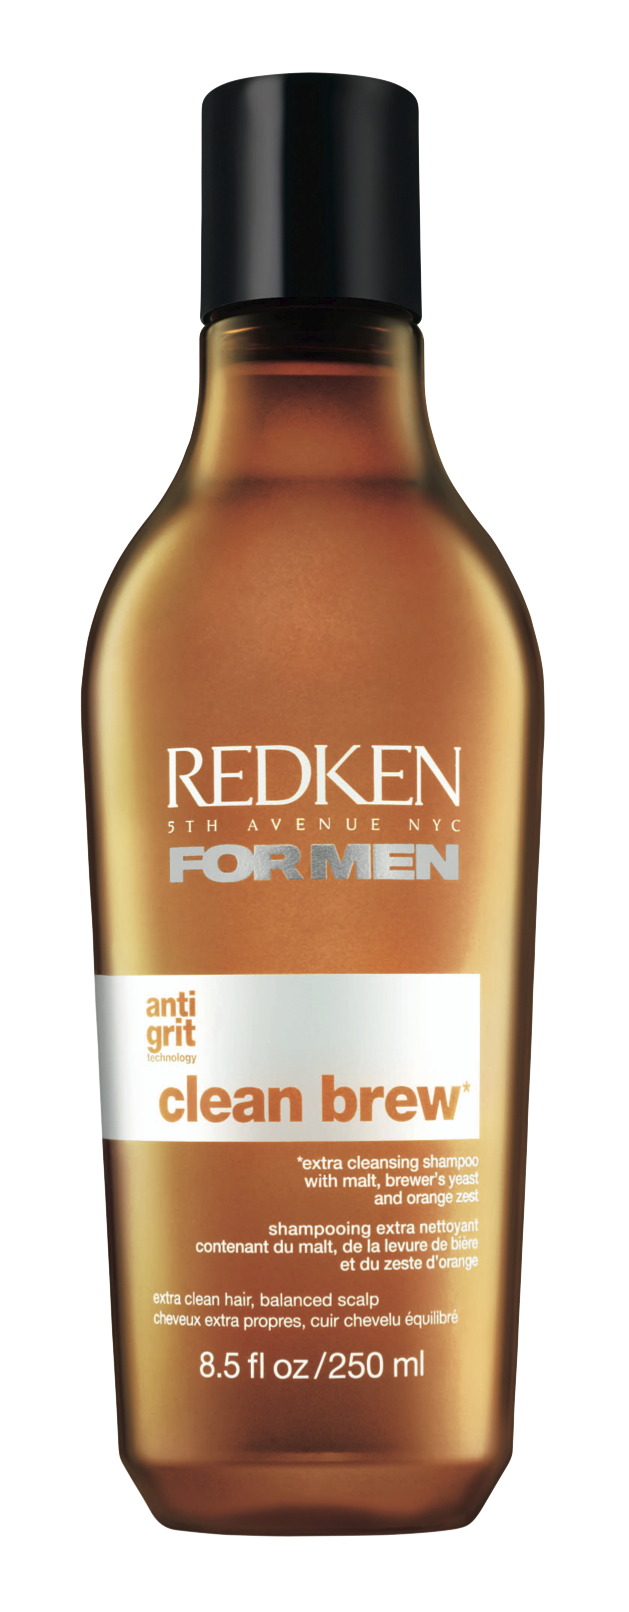 RFM_Clean Brew_high res copy.jpg